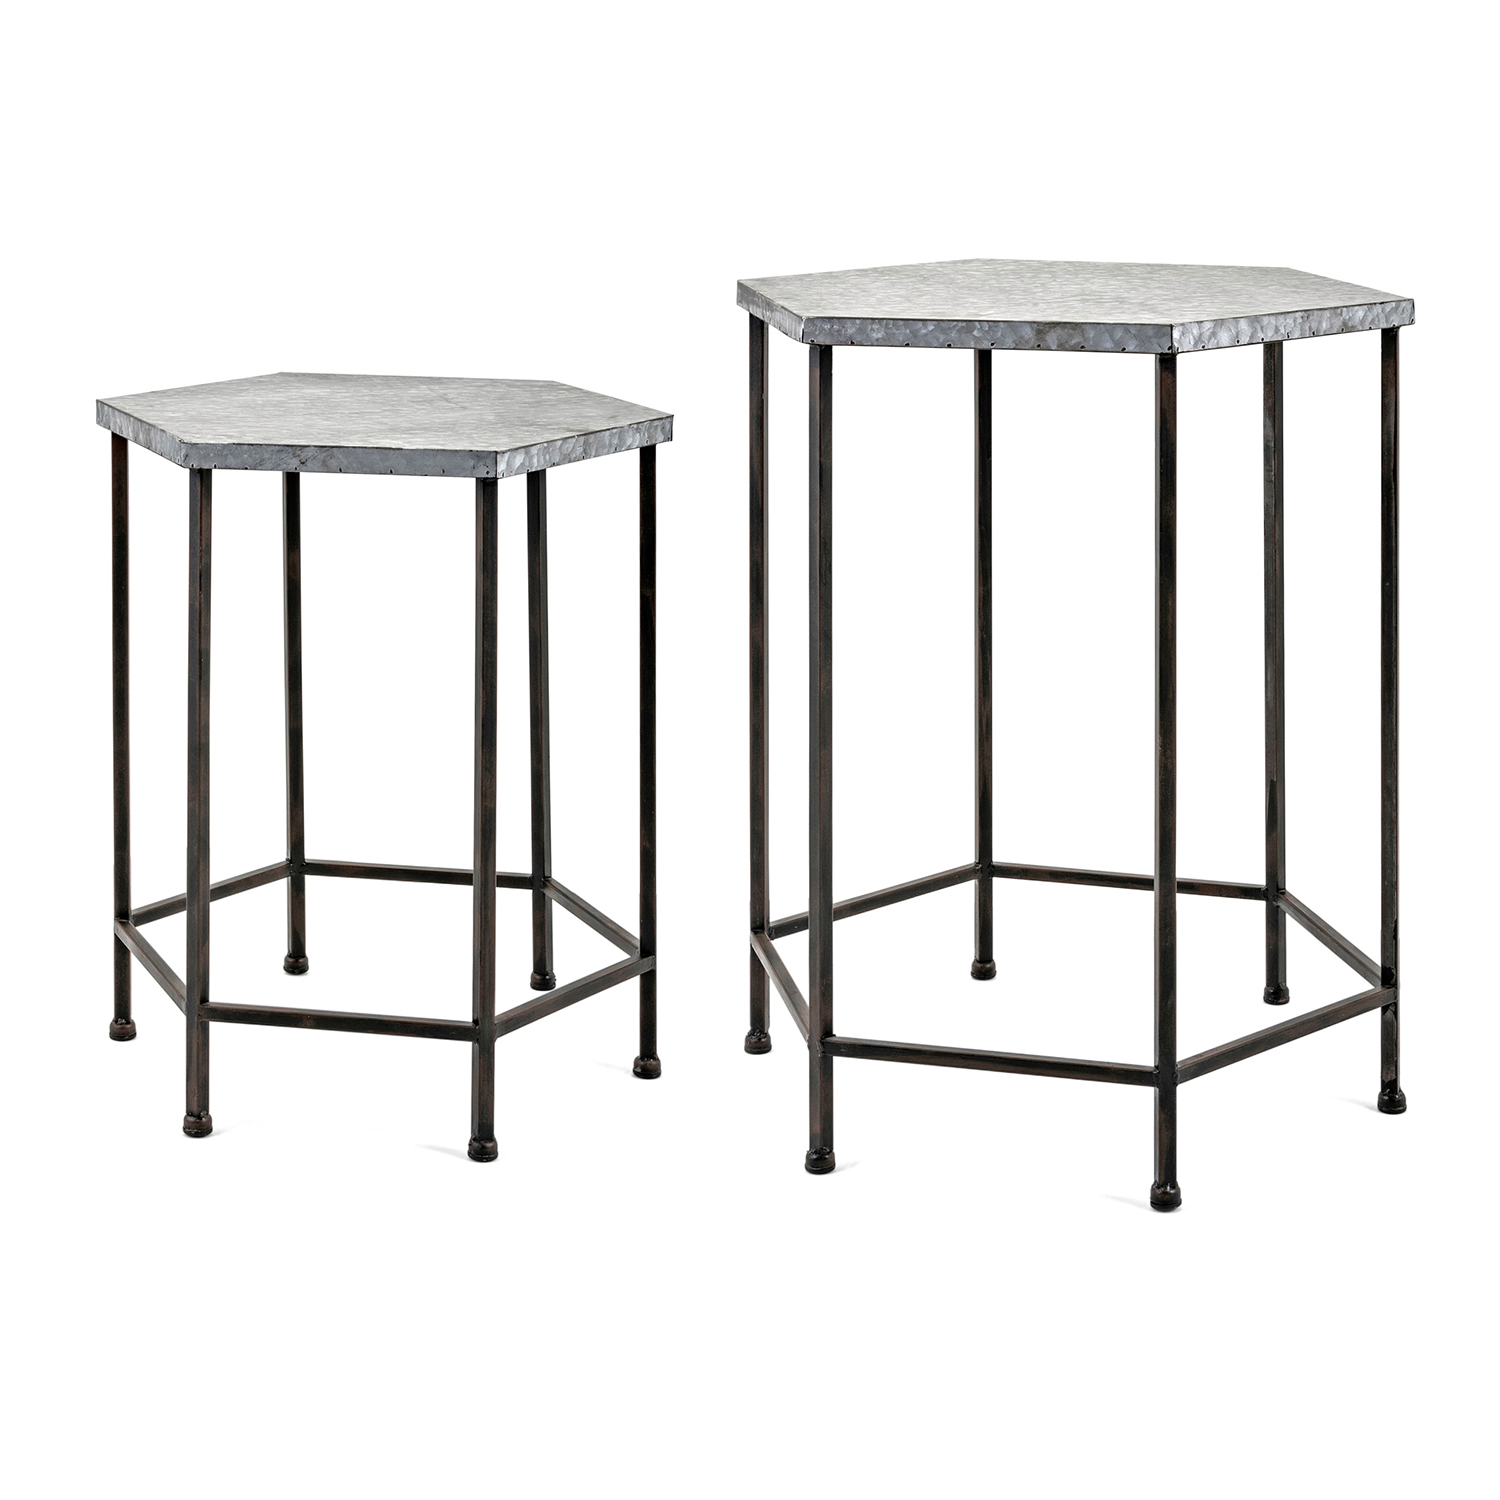 imax kendan galvanized accent tables set bellacor metal table hover zoom kitchen and stools plastic garden furniture sets carpet transition piece marble demilune console iron